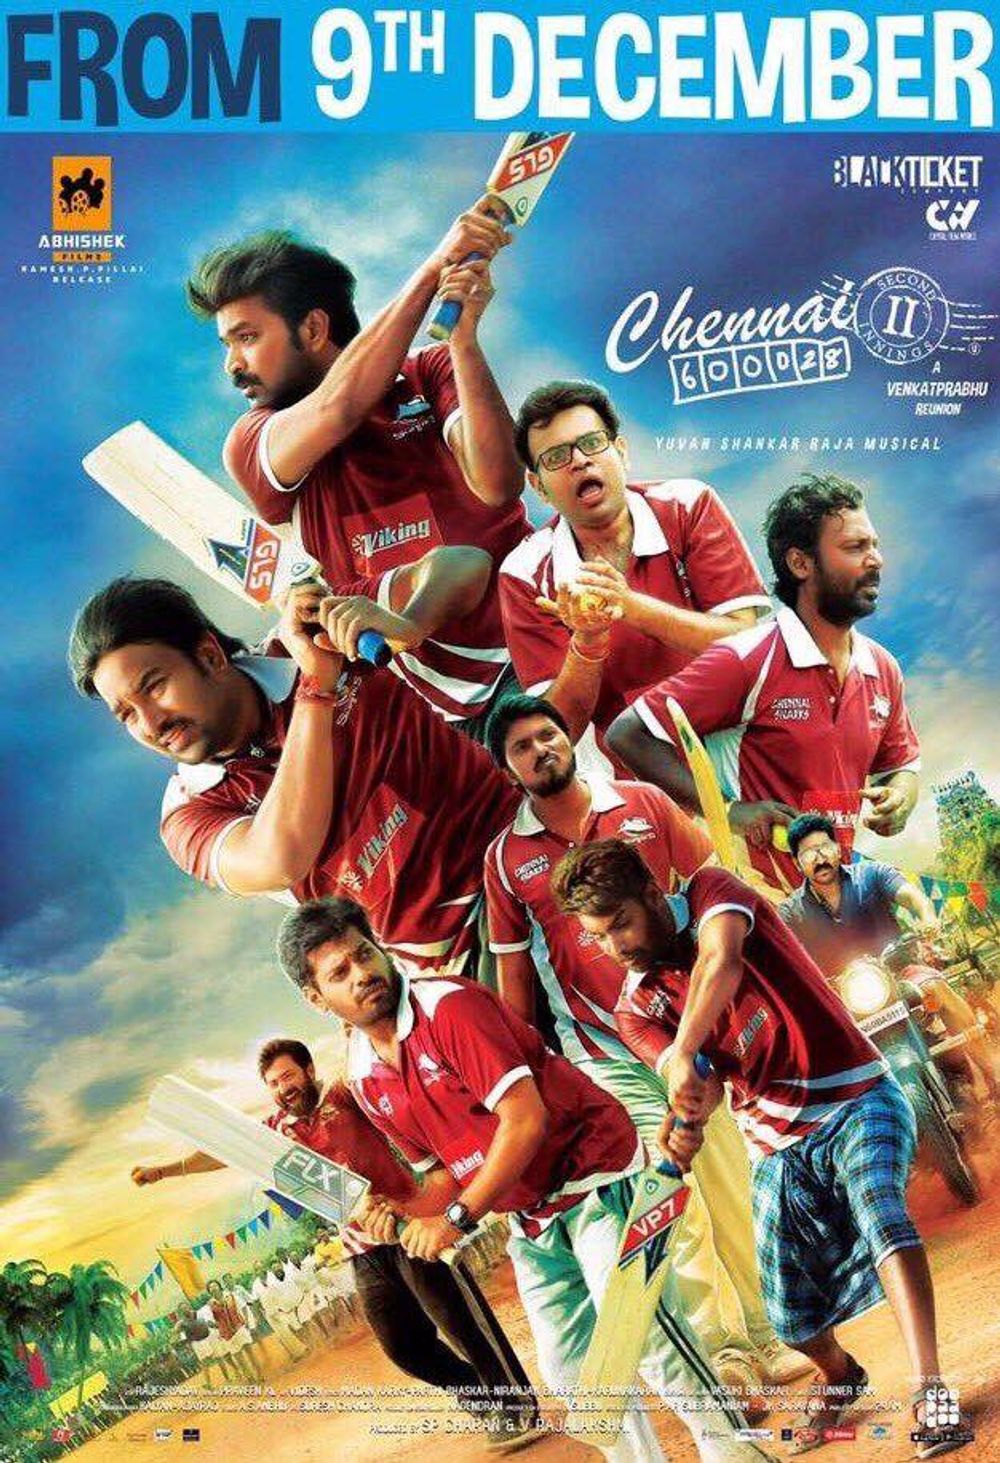 Chennai 600028 II 2021 Hindi Dubbed 480p HDTVRip 400MB Download